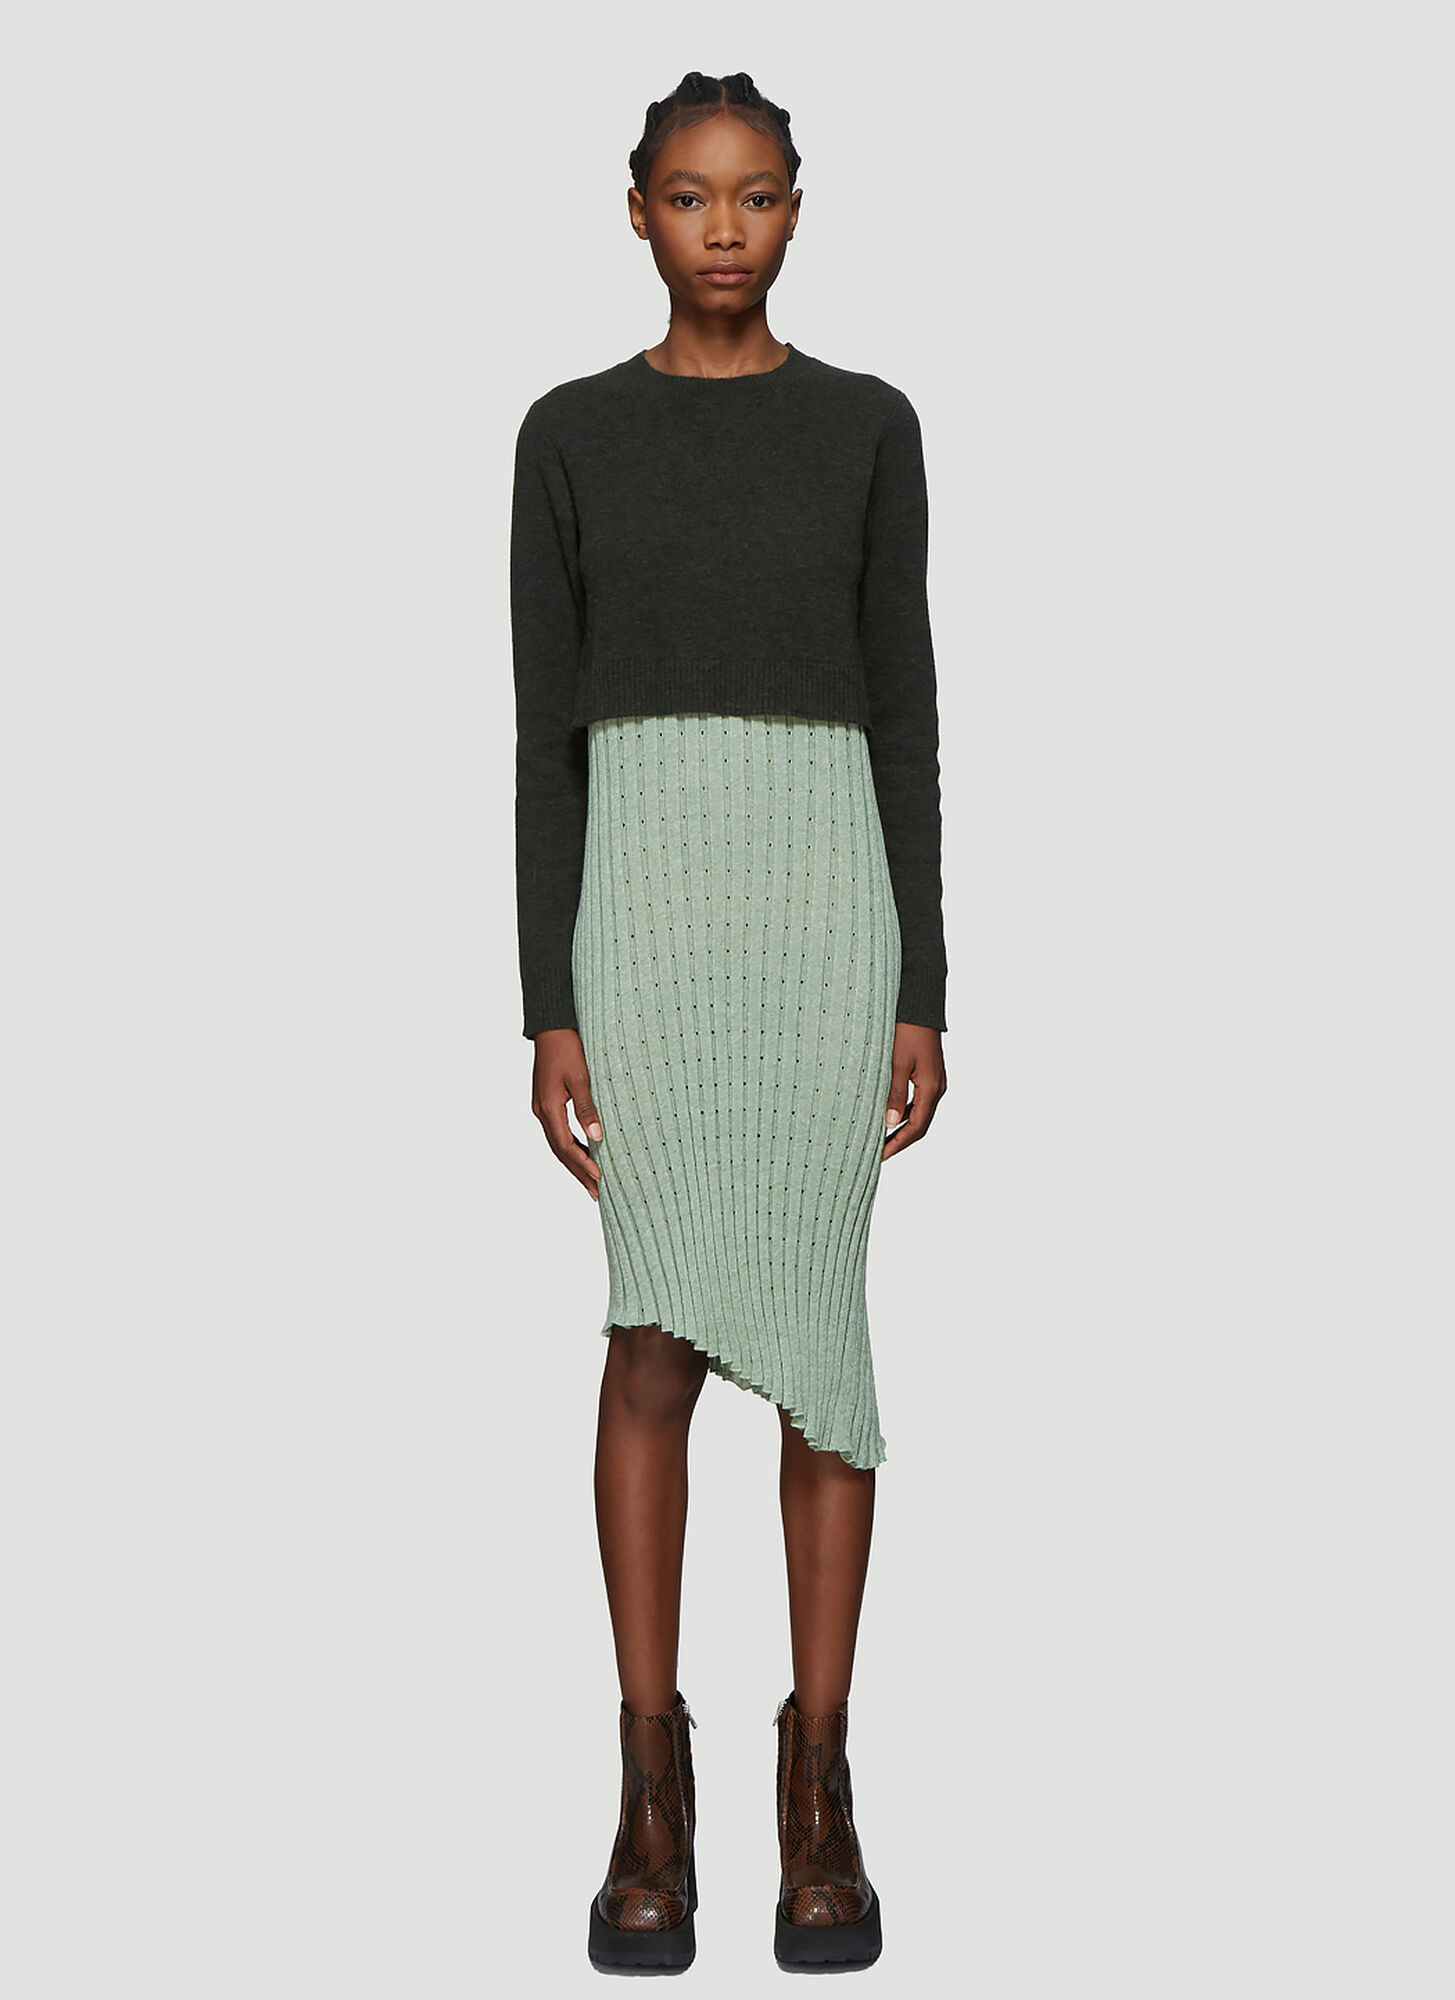 Photo of JW Anderson Contrast Panel Pleated Dress in Green - JW Anderson Dresses